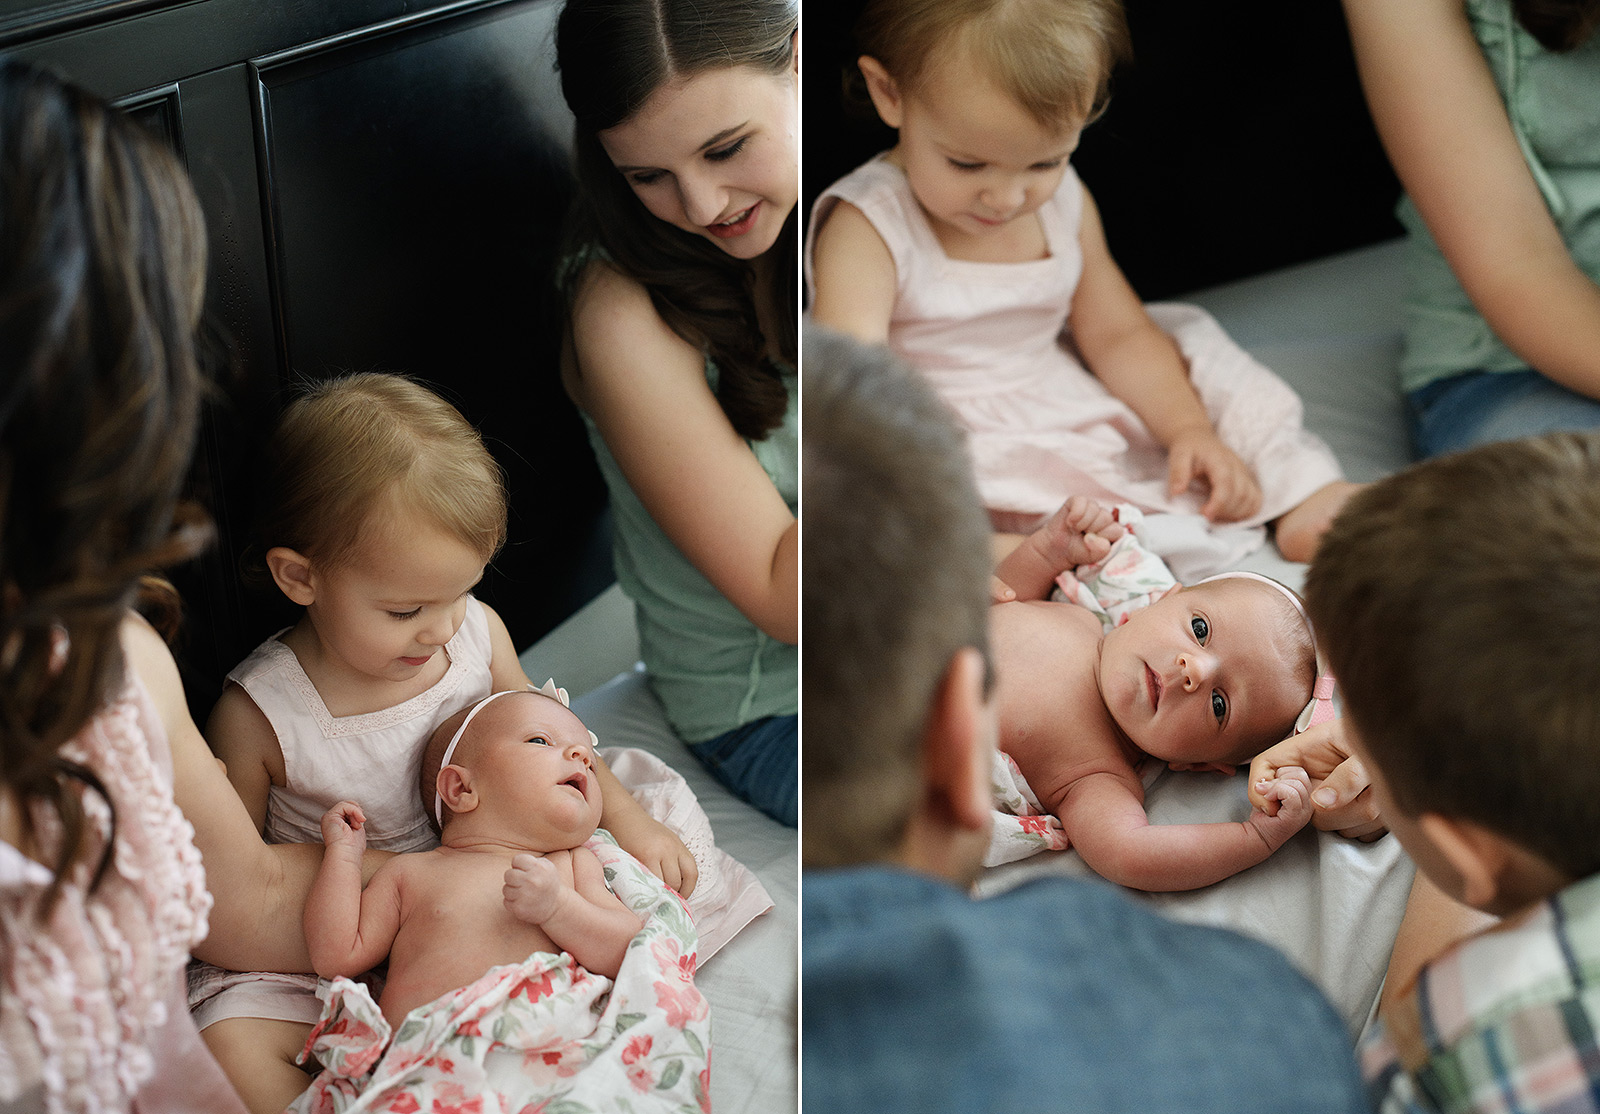 Big sister lovingly holds and gazes at new baby sister on bed lifestyle photo